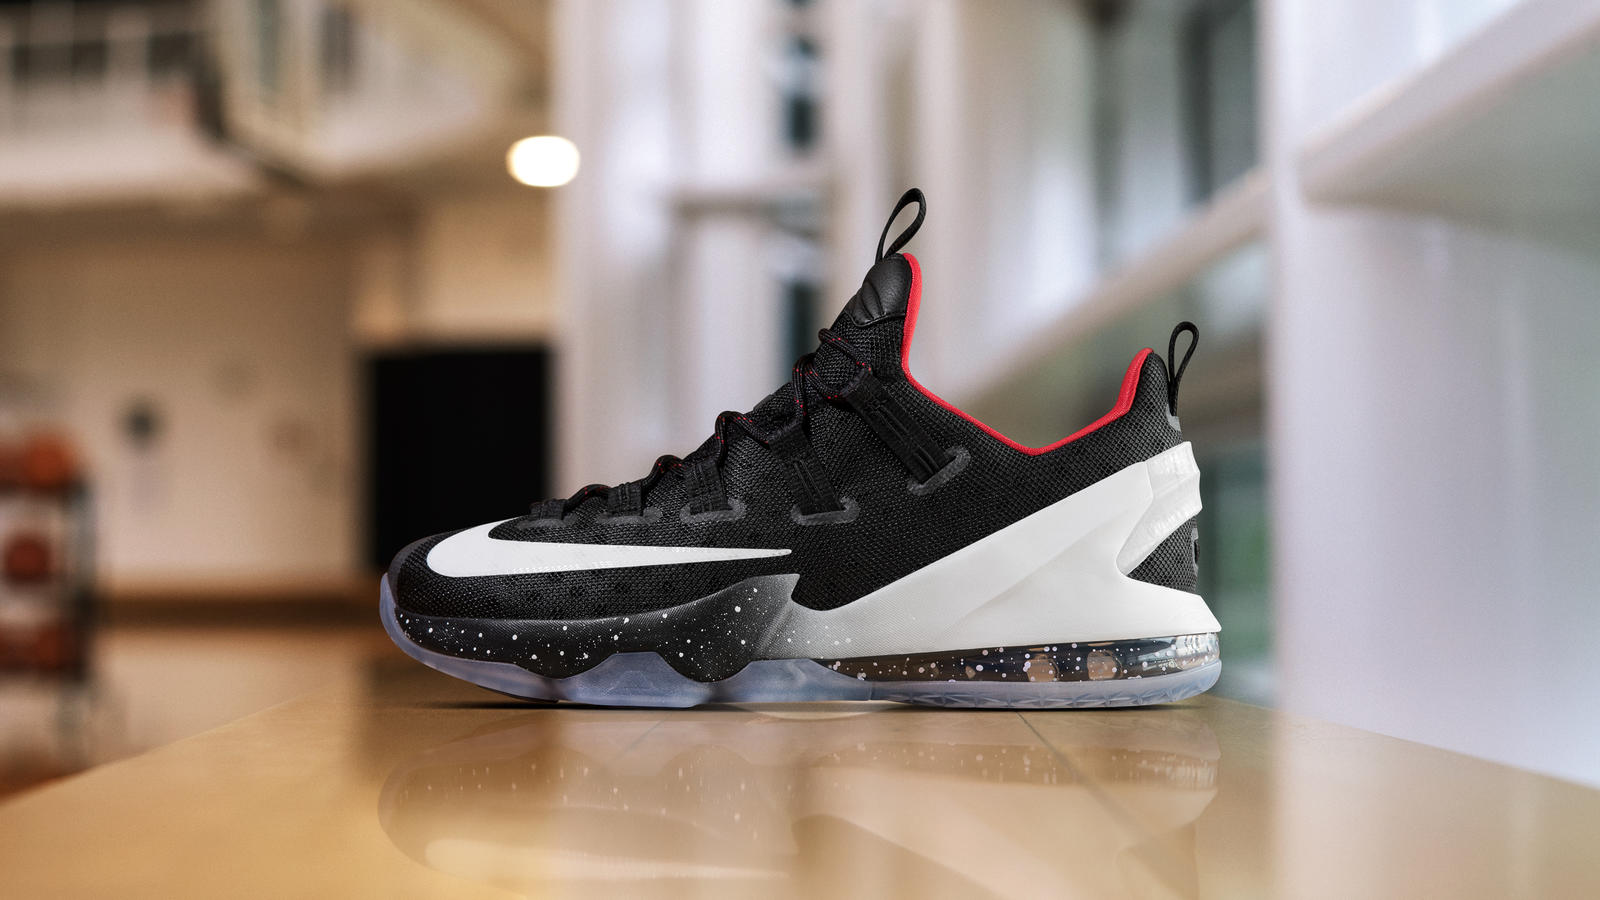 LEBRON 13 Low PE